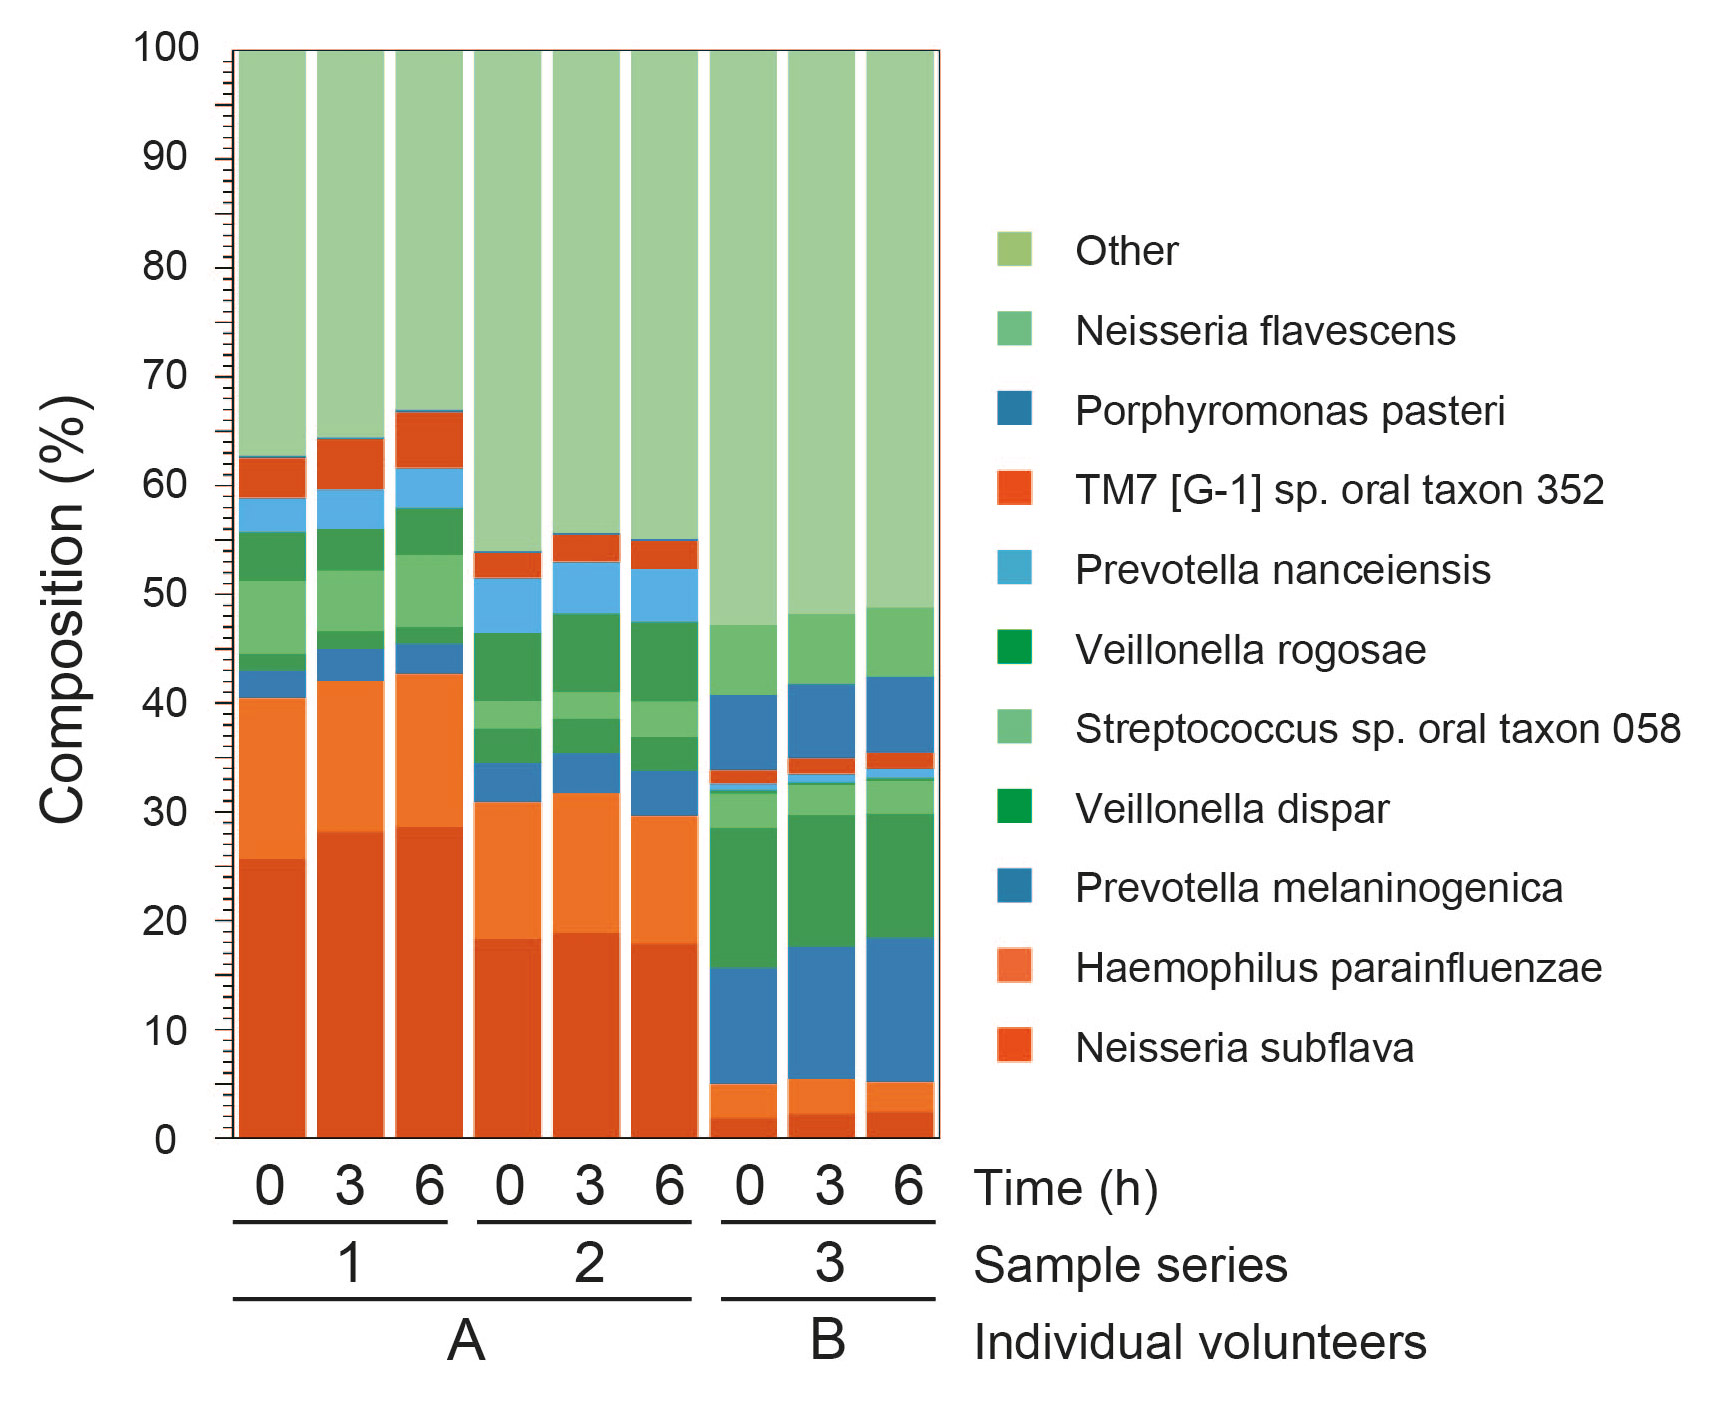 Fig. 2 Relative species abundance of salivary samples. Three salivary specimens were collected from 2 healthy adults. The 3 samples from the left are series 1 (samples from volunteer A), the 3 samples in the middle are series 2 (samples from volunteer A), and the next 3 samples are series 3 (samples from volunteer B). The 10 most predominant species and their relative abundance are presented.